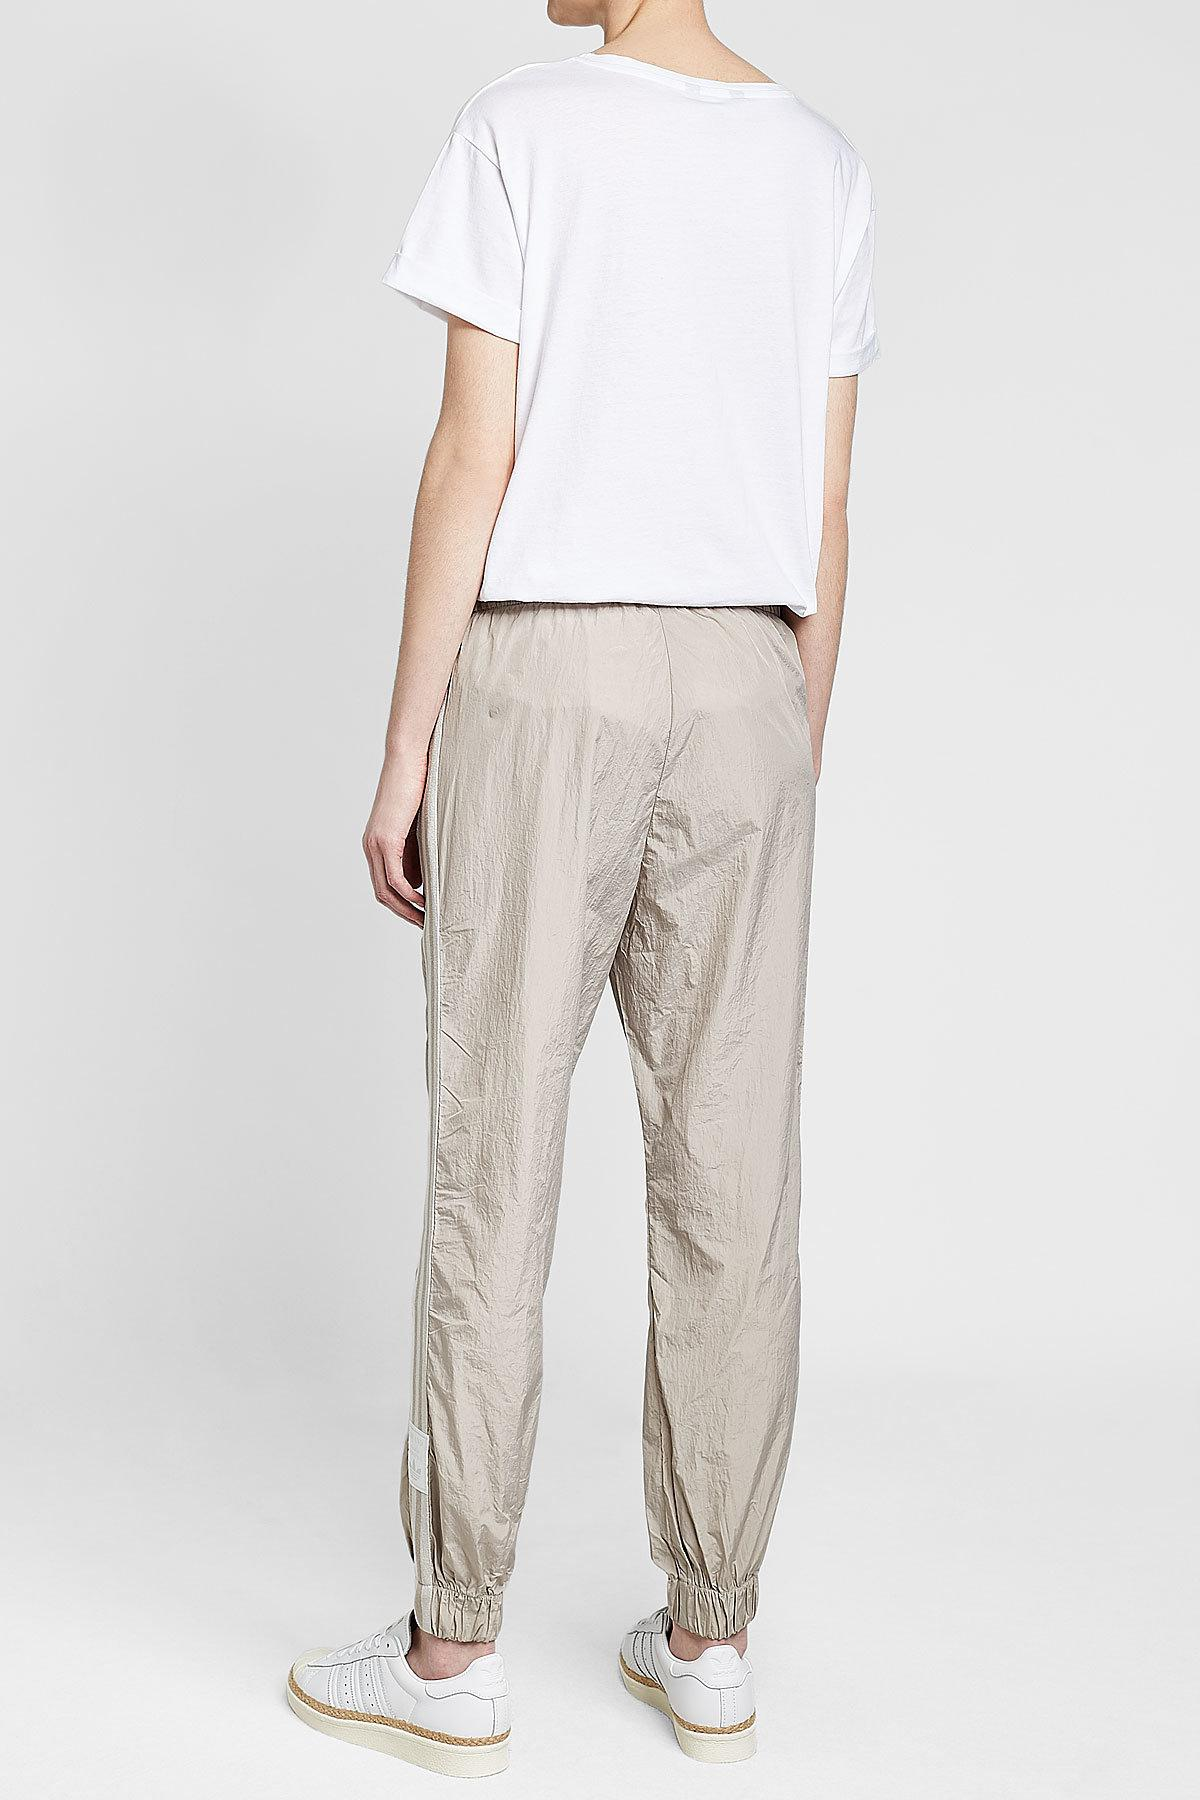 adidas Originals Adibreak Track Pants Lyst